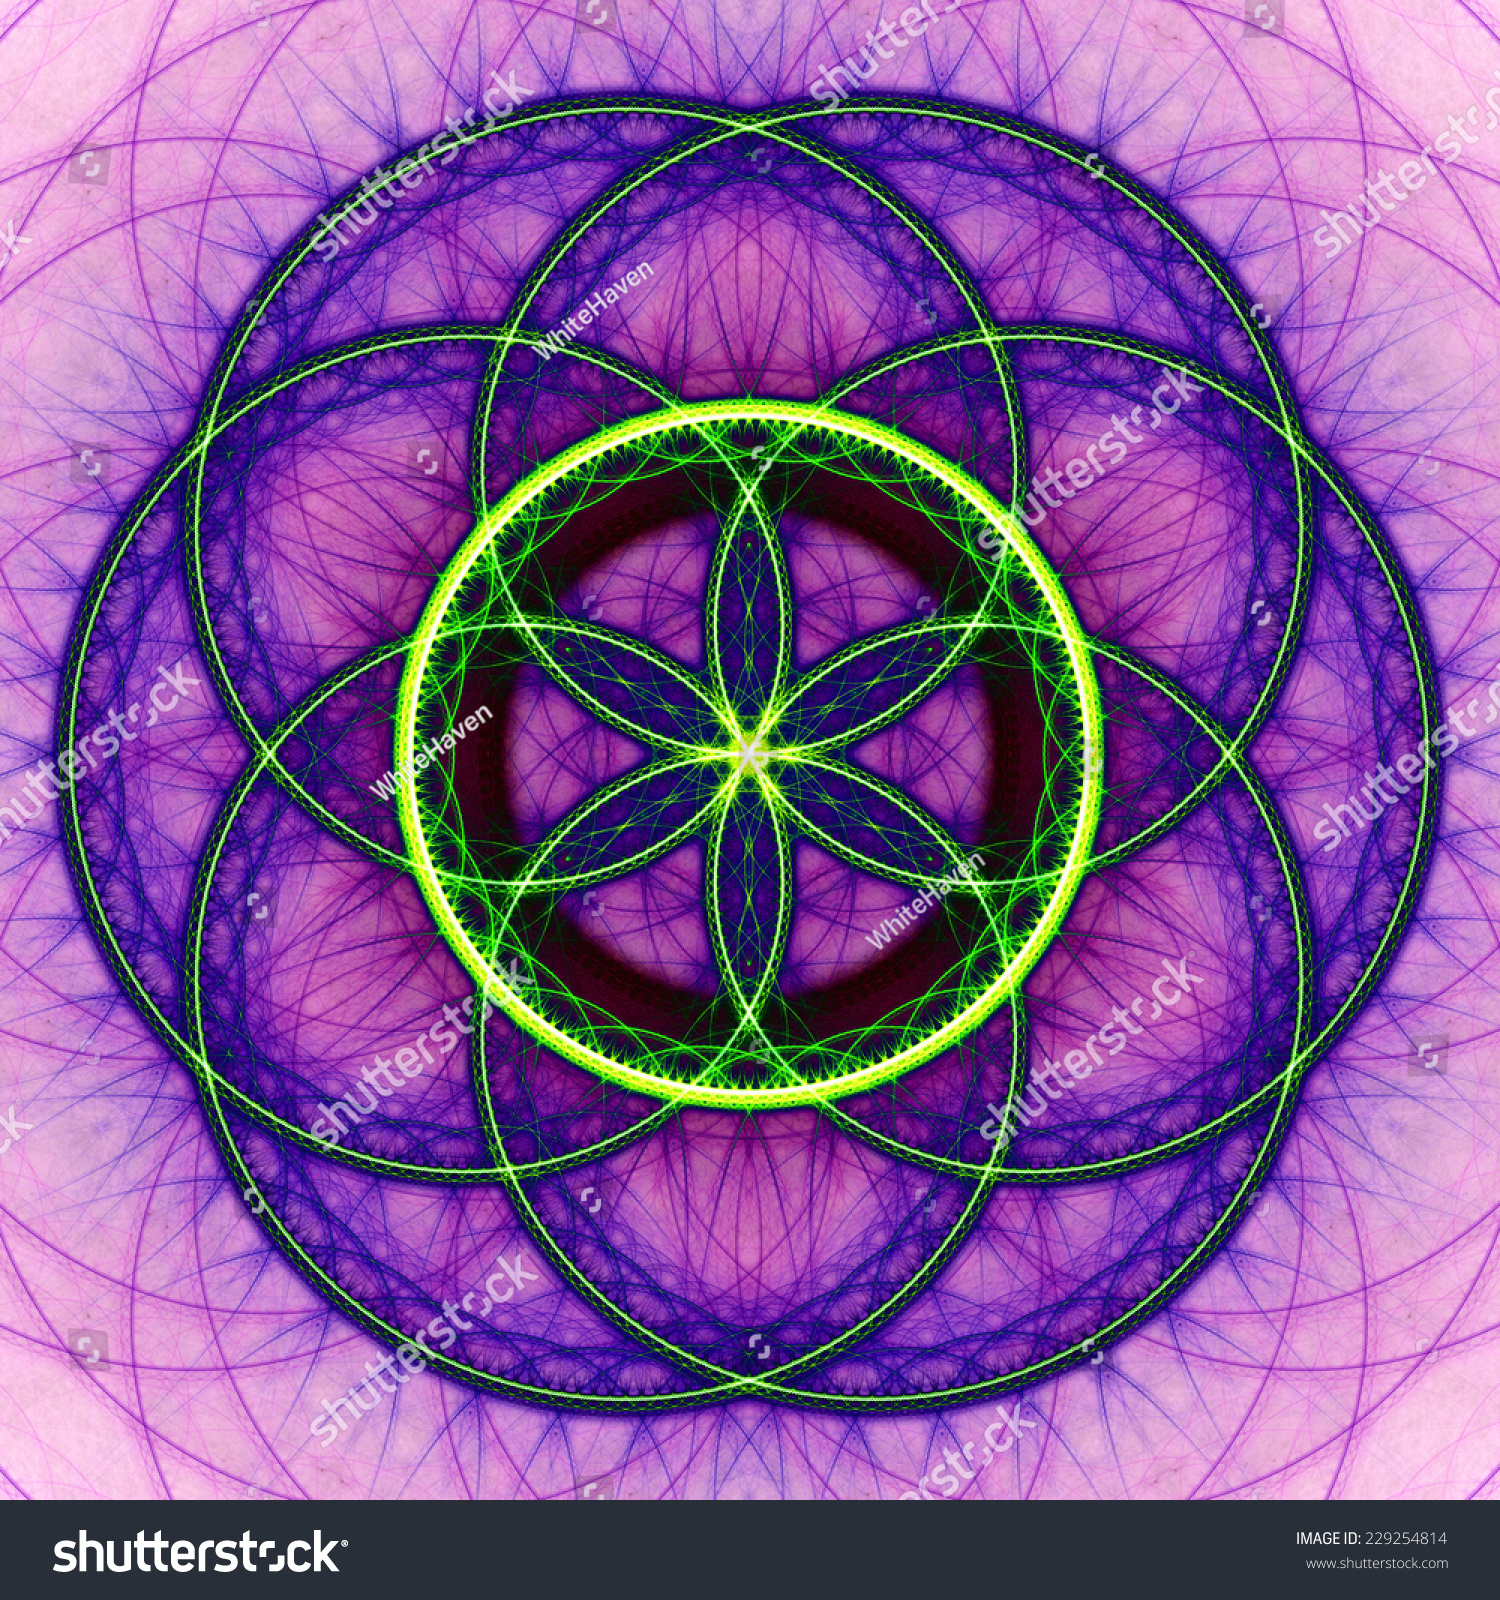 Abstract High Resolution Colorful Flower Of Life Mandala